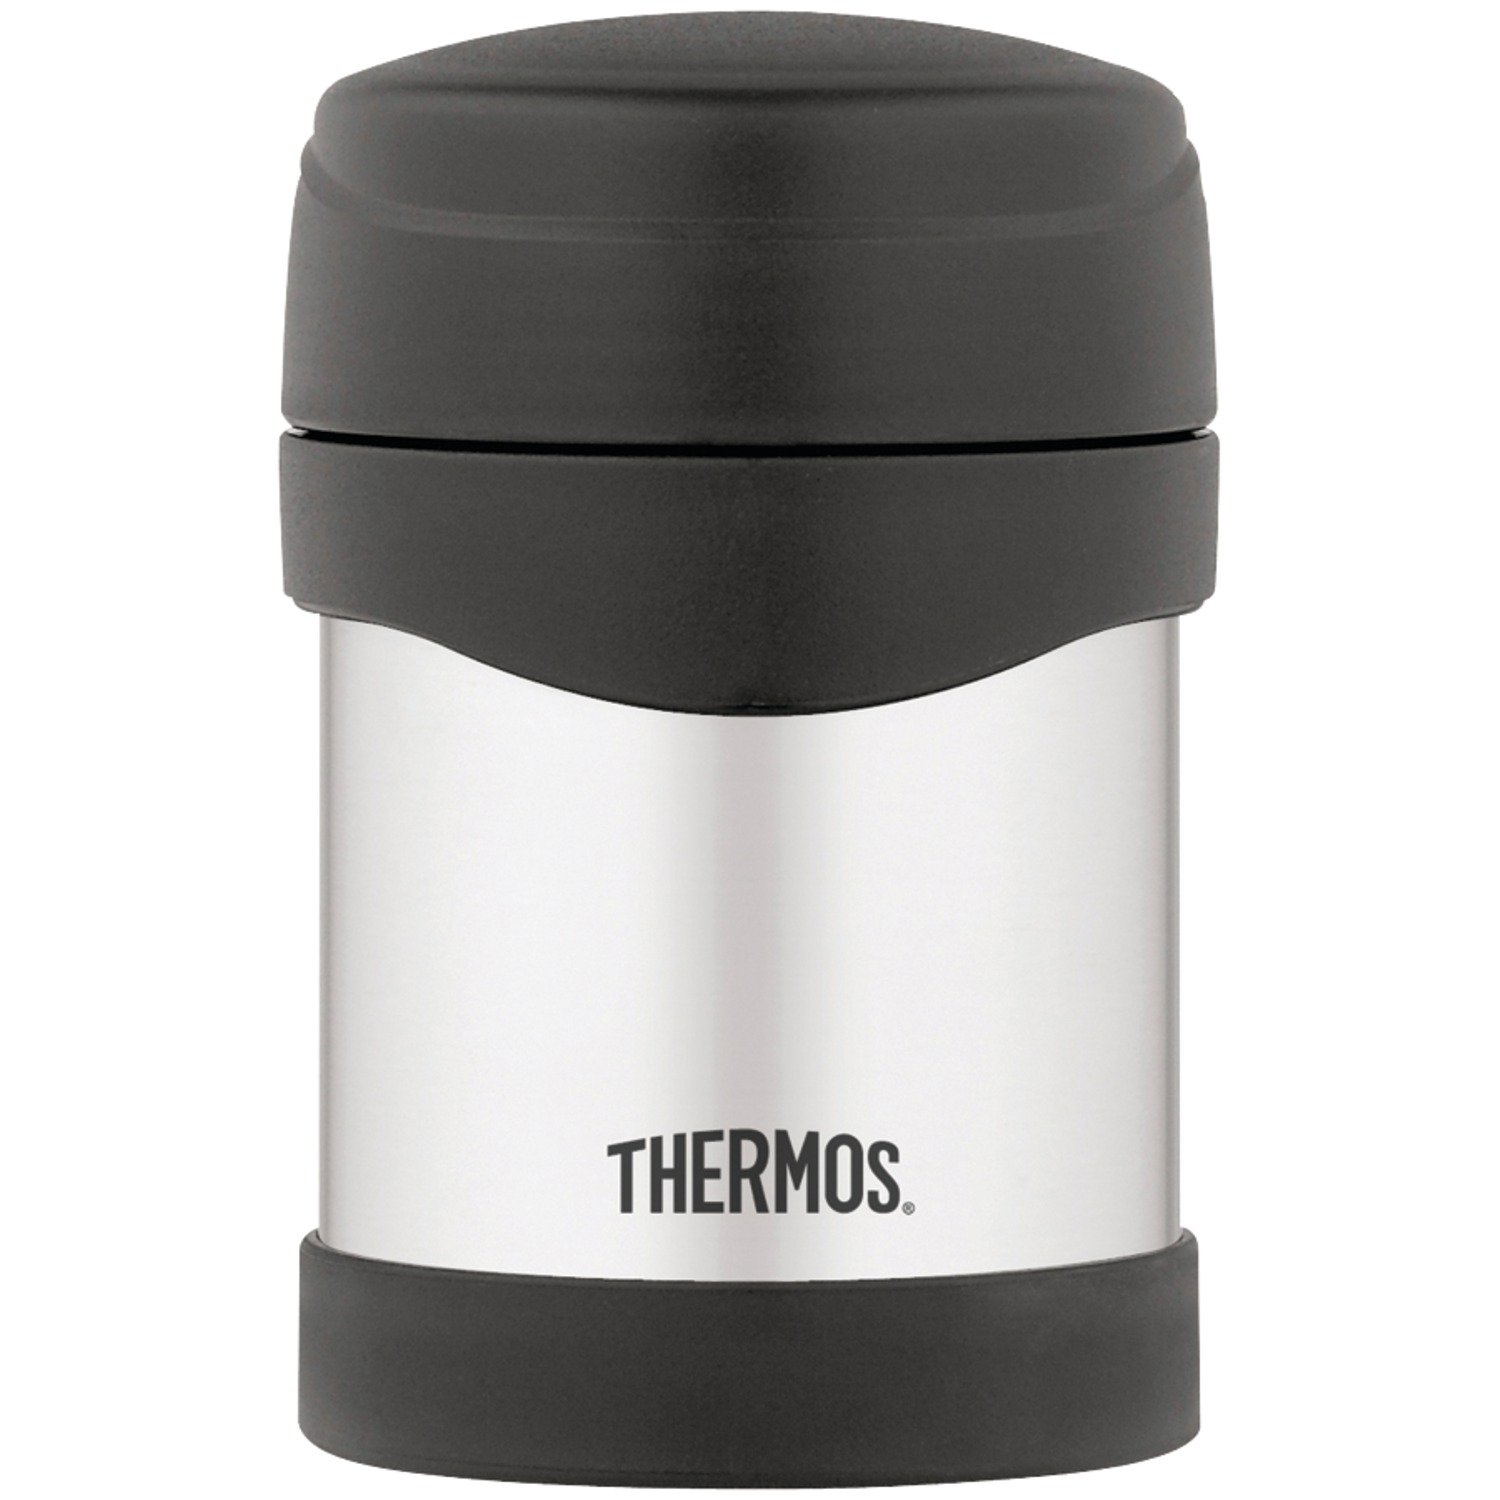 Thermos Vacuum Insulated Food Jar-10 oz.